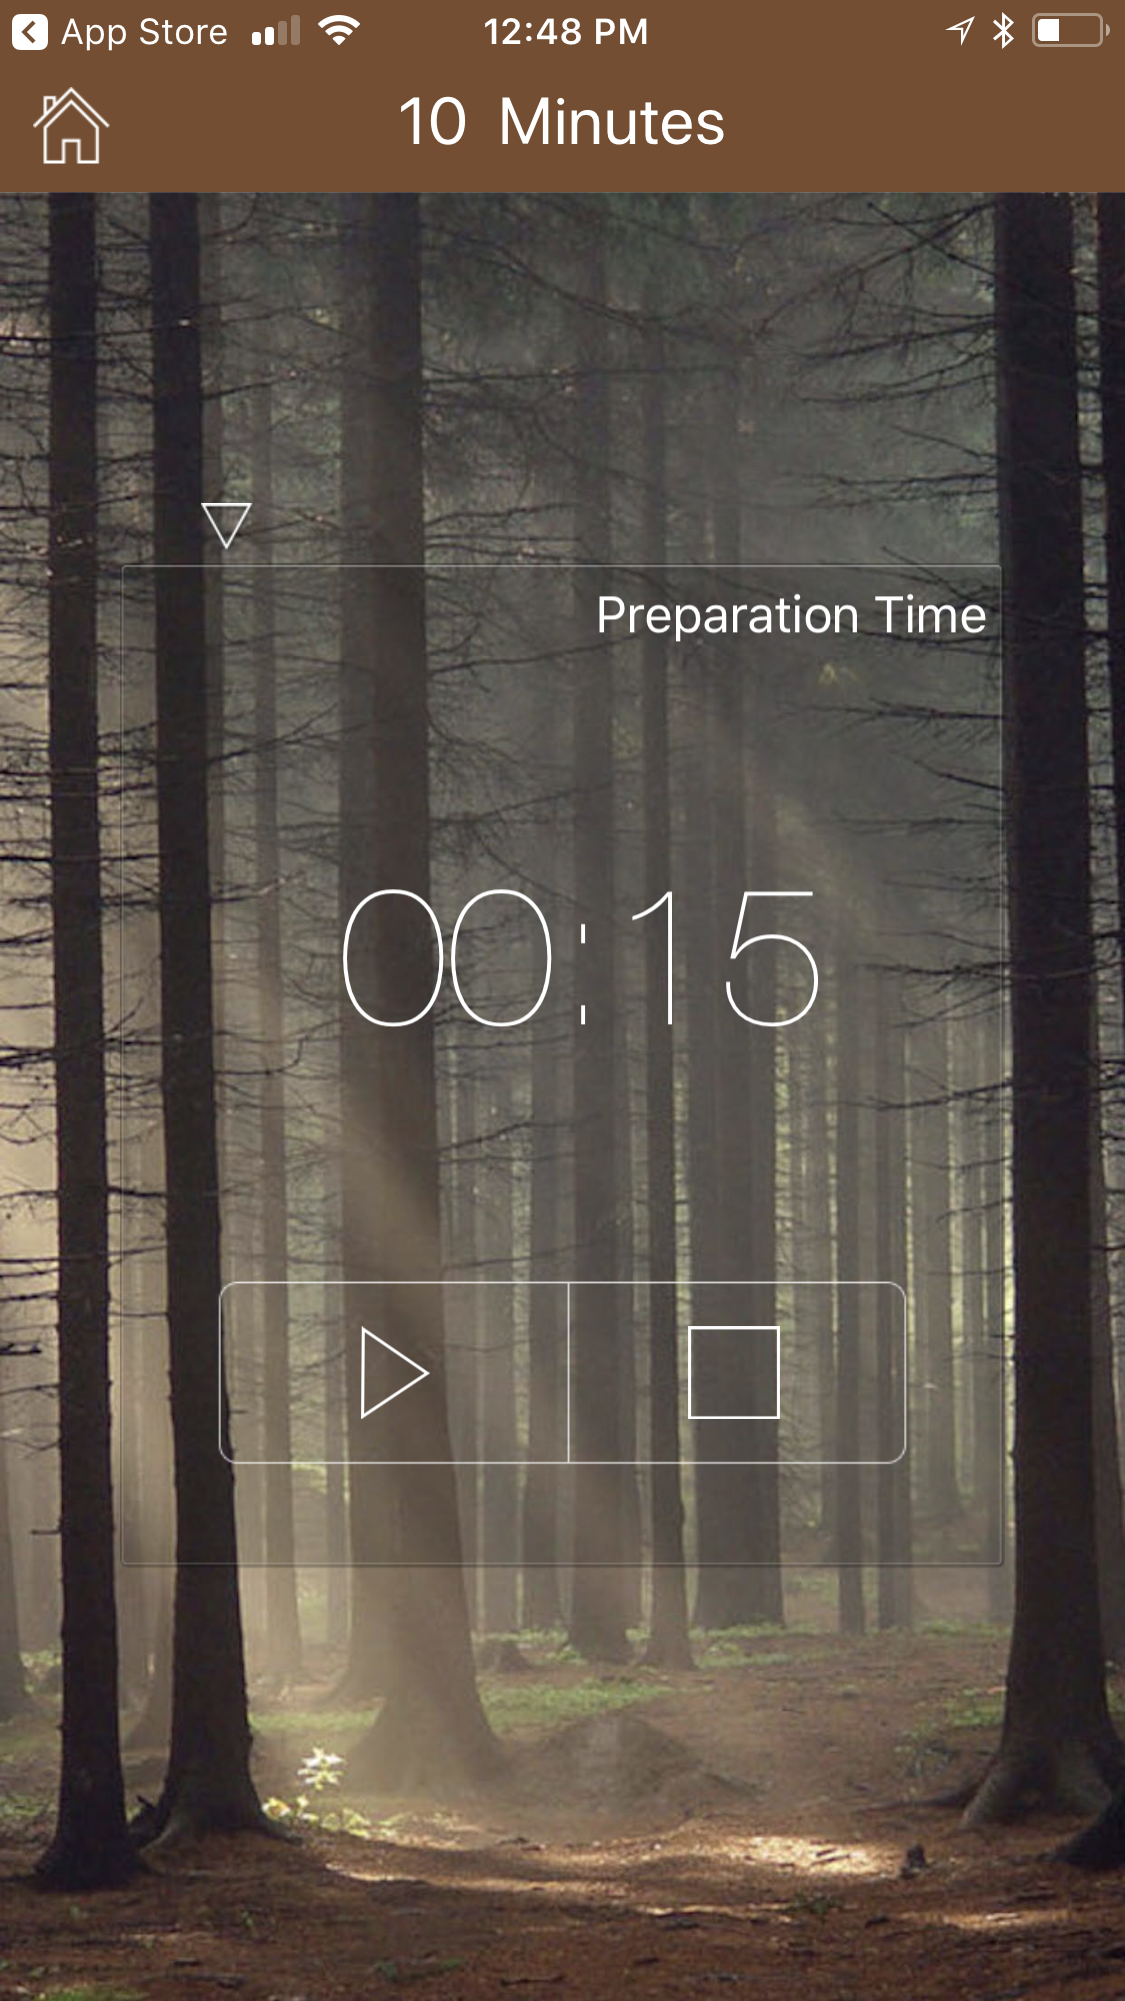 Meditation Timer Apps For The Apple Watch Tested But Found Lacking